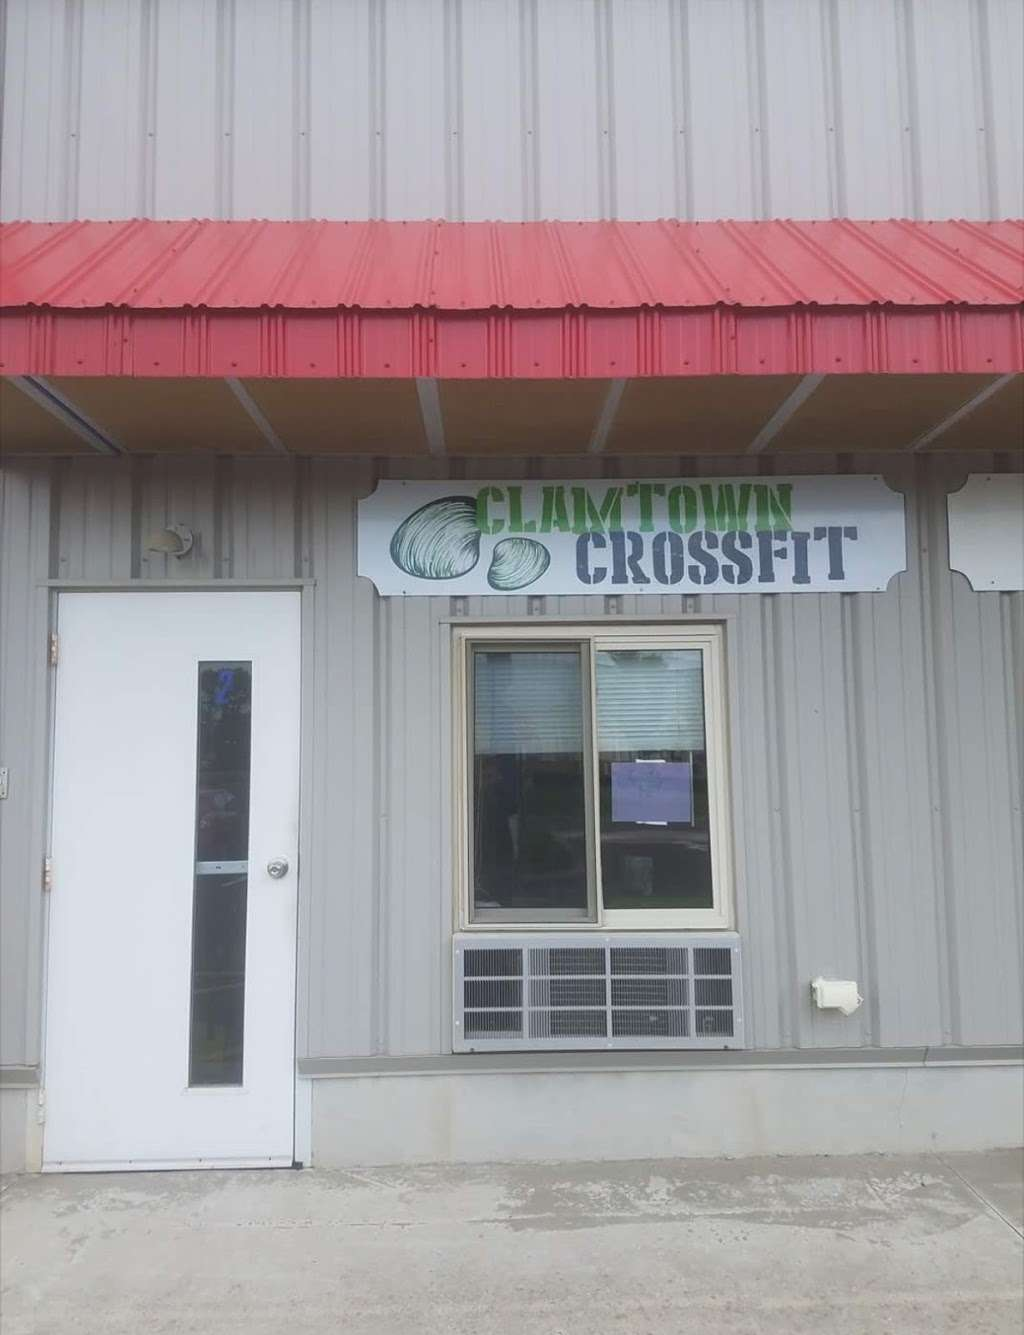 Clamtown CrossFit - gym  | Photo 6 of 10 | Address: 140 7th Ave # 2, Little Egg Harbor Township, NJ 08087, USA | Phone: (609) 812-2145